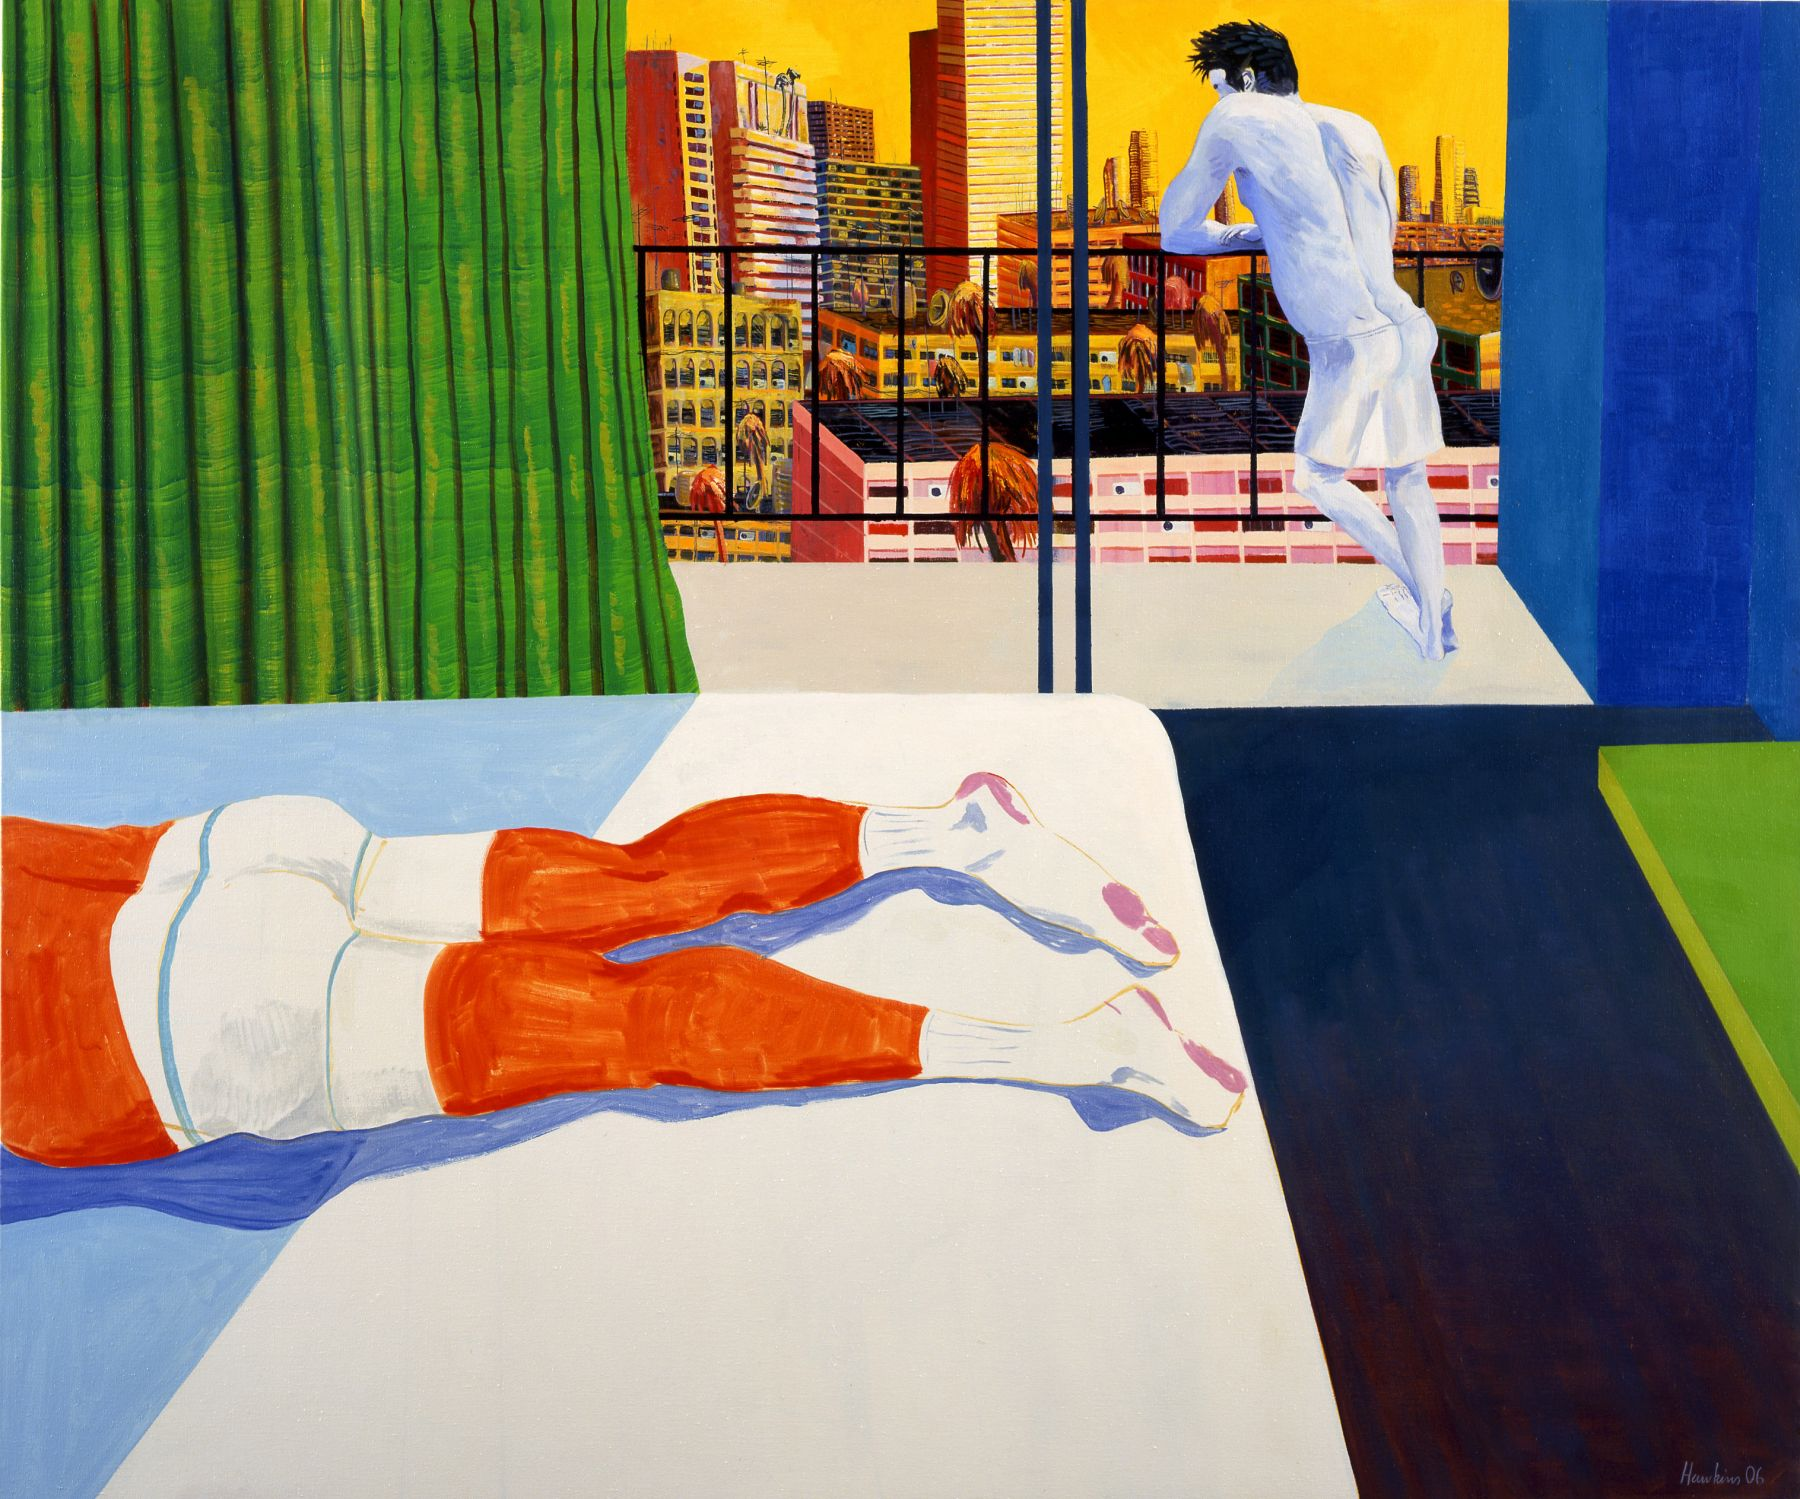 Sunburn (spitting off the balcony), 2006, oil on linen, 60 x 72 inches